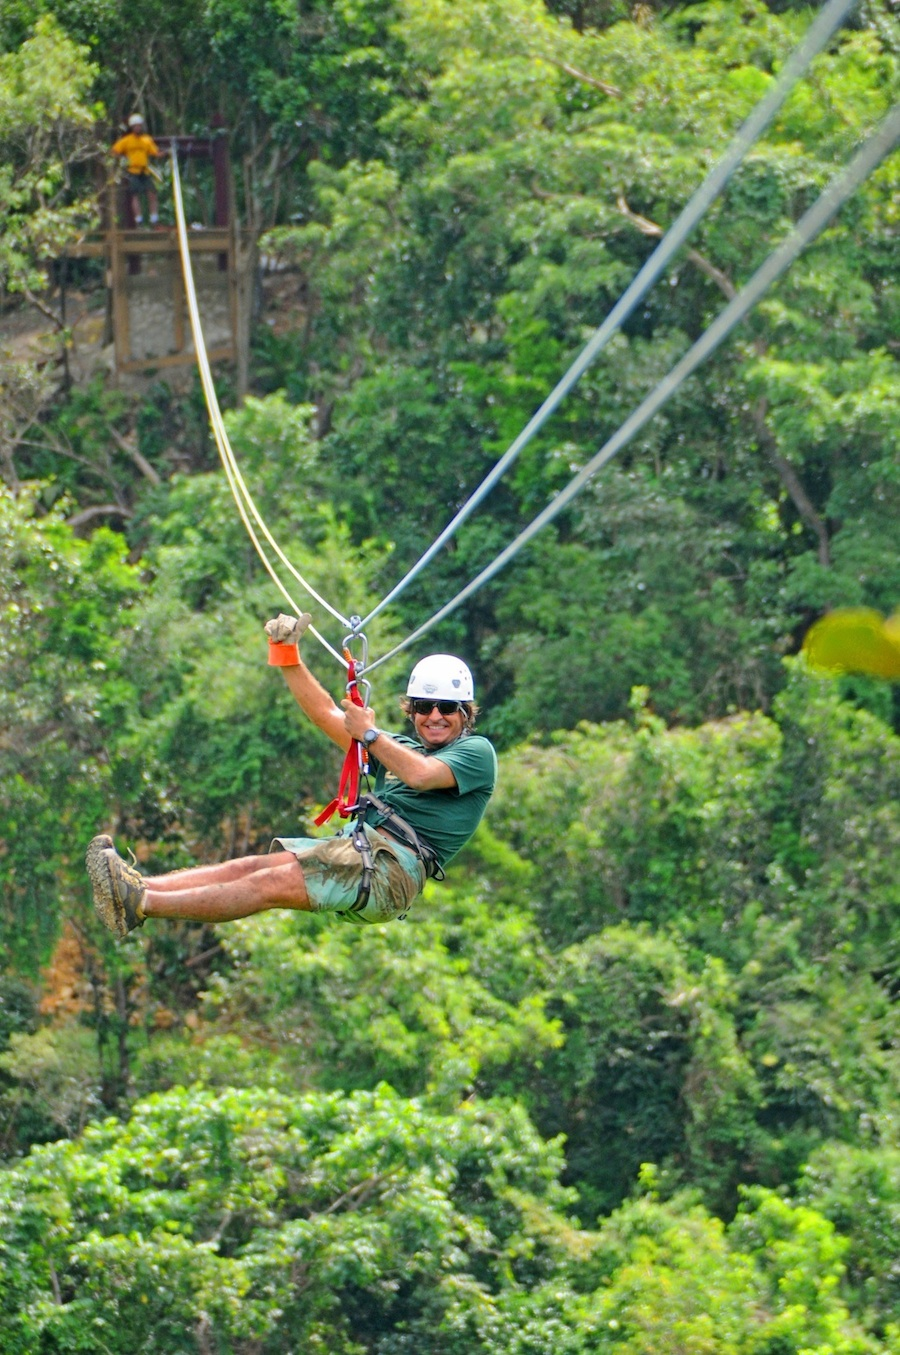 Campo Rico Ziplining Adventure-AM session (Without transportation) - Puerto Rico Best Tour Reservations